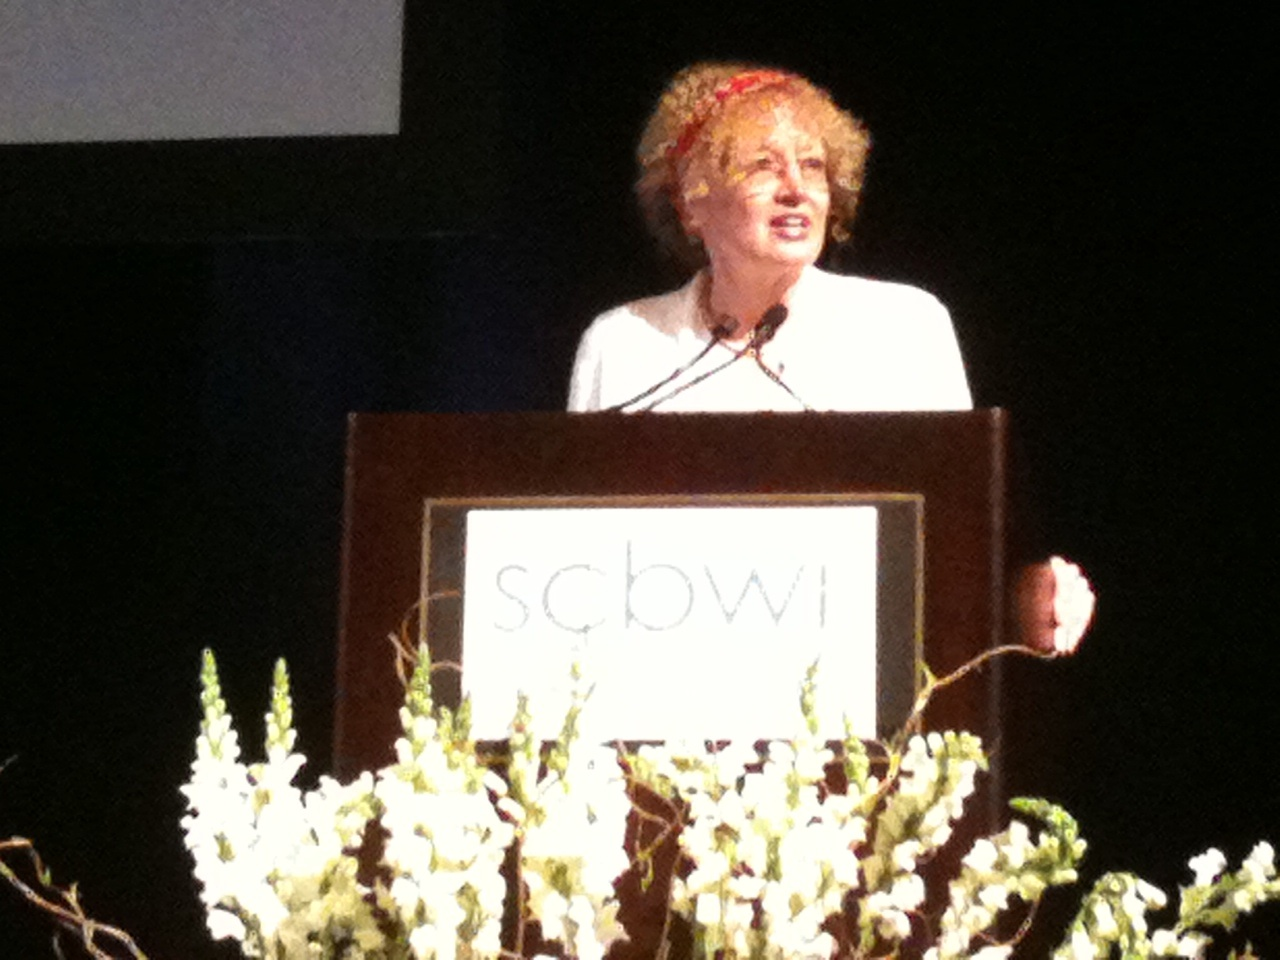 The Official SCBWI Conference Blog: Mary Pope Osborne: A